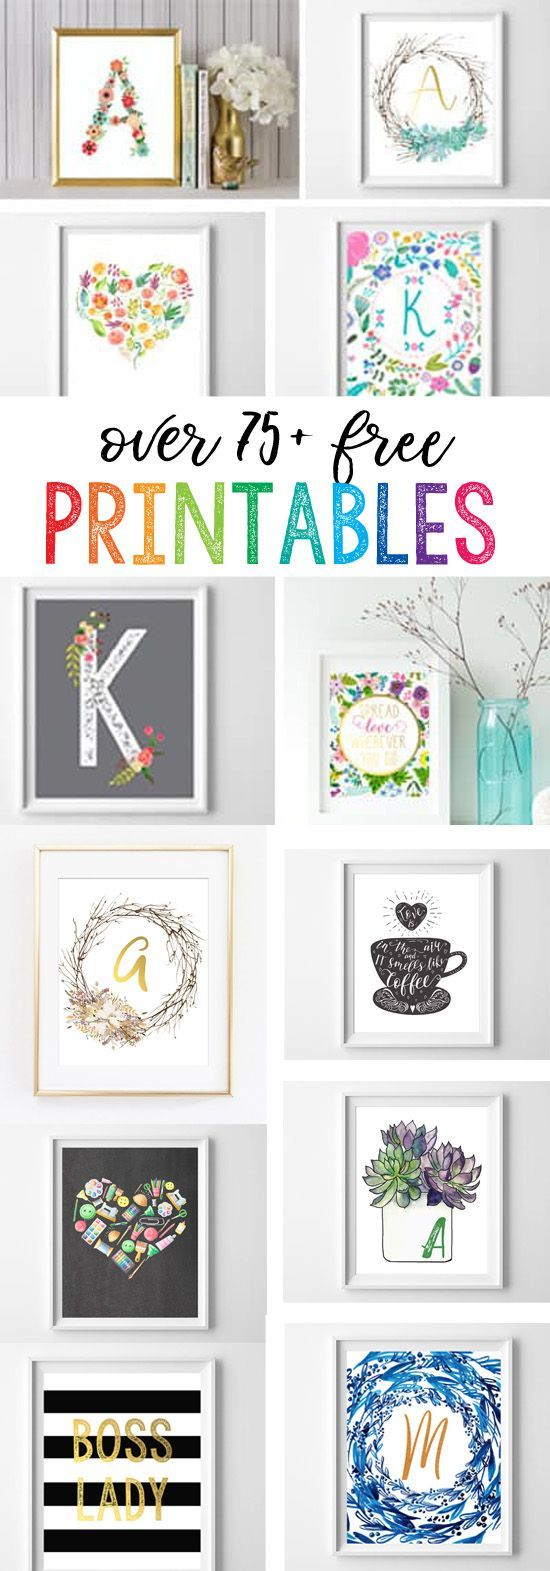 free printables for the home {over 50 home, nursery, and